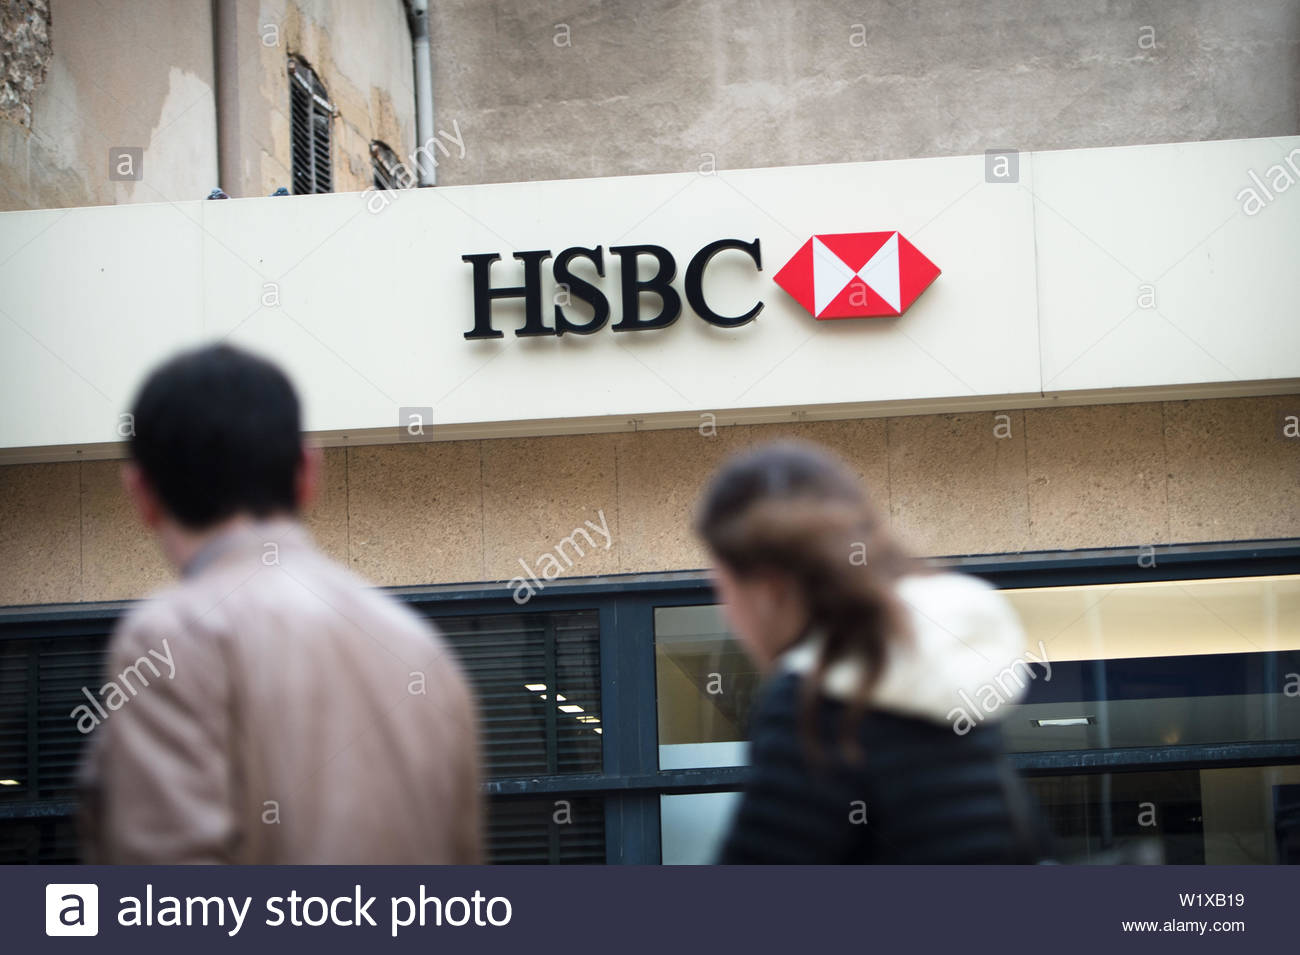 Sign of a bank branch belonging to HSBC - Stock Image